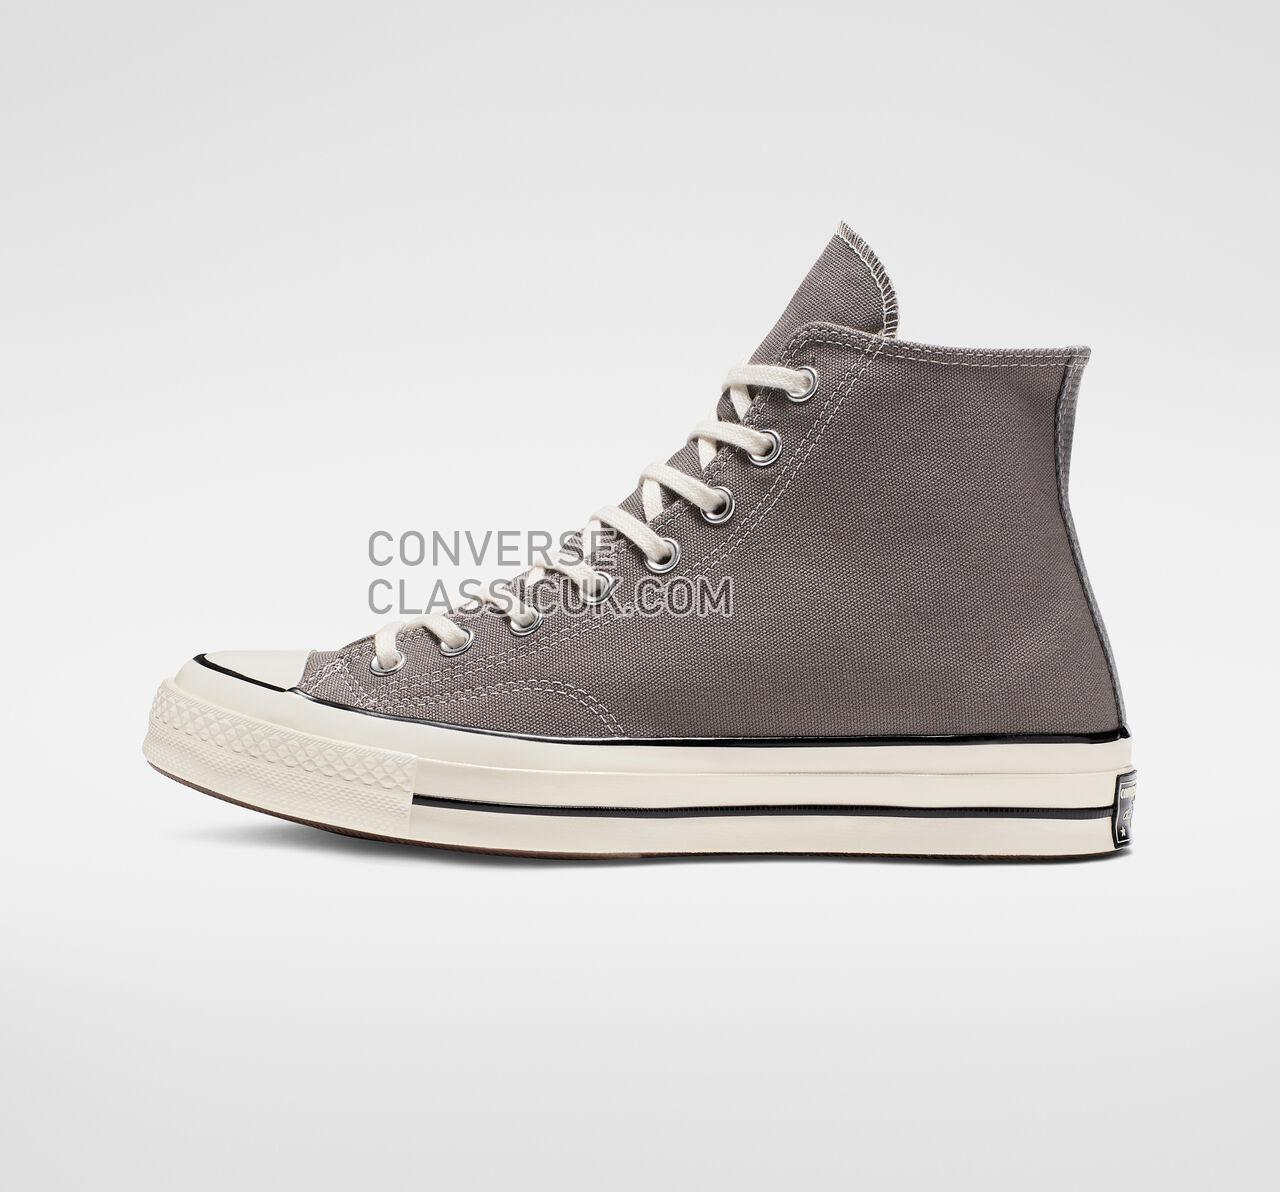 Converse Chuck 70 High Top Mens Womens Unisex 164946C Mason/Egret/Black Shoes